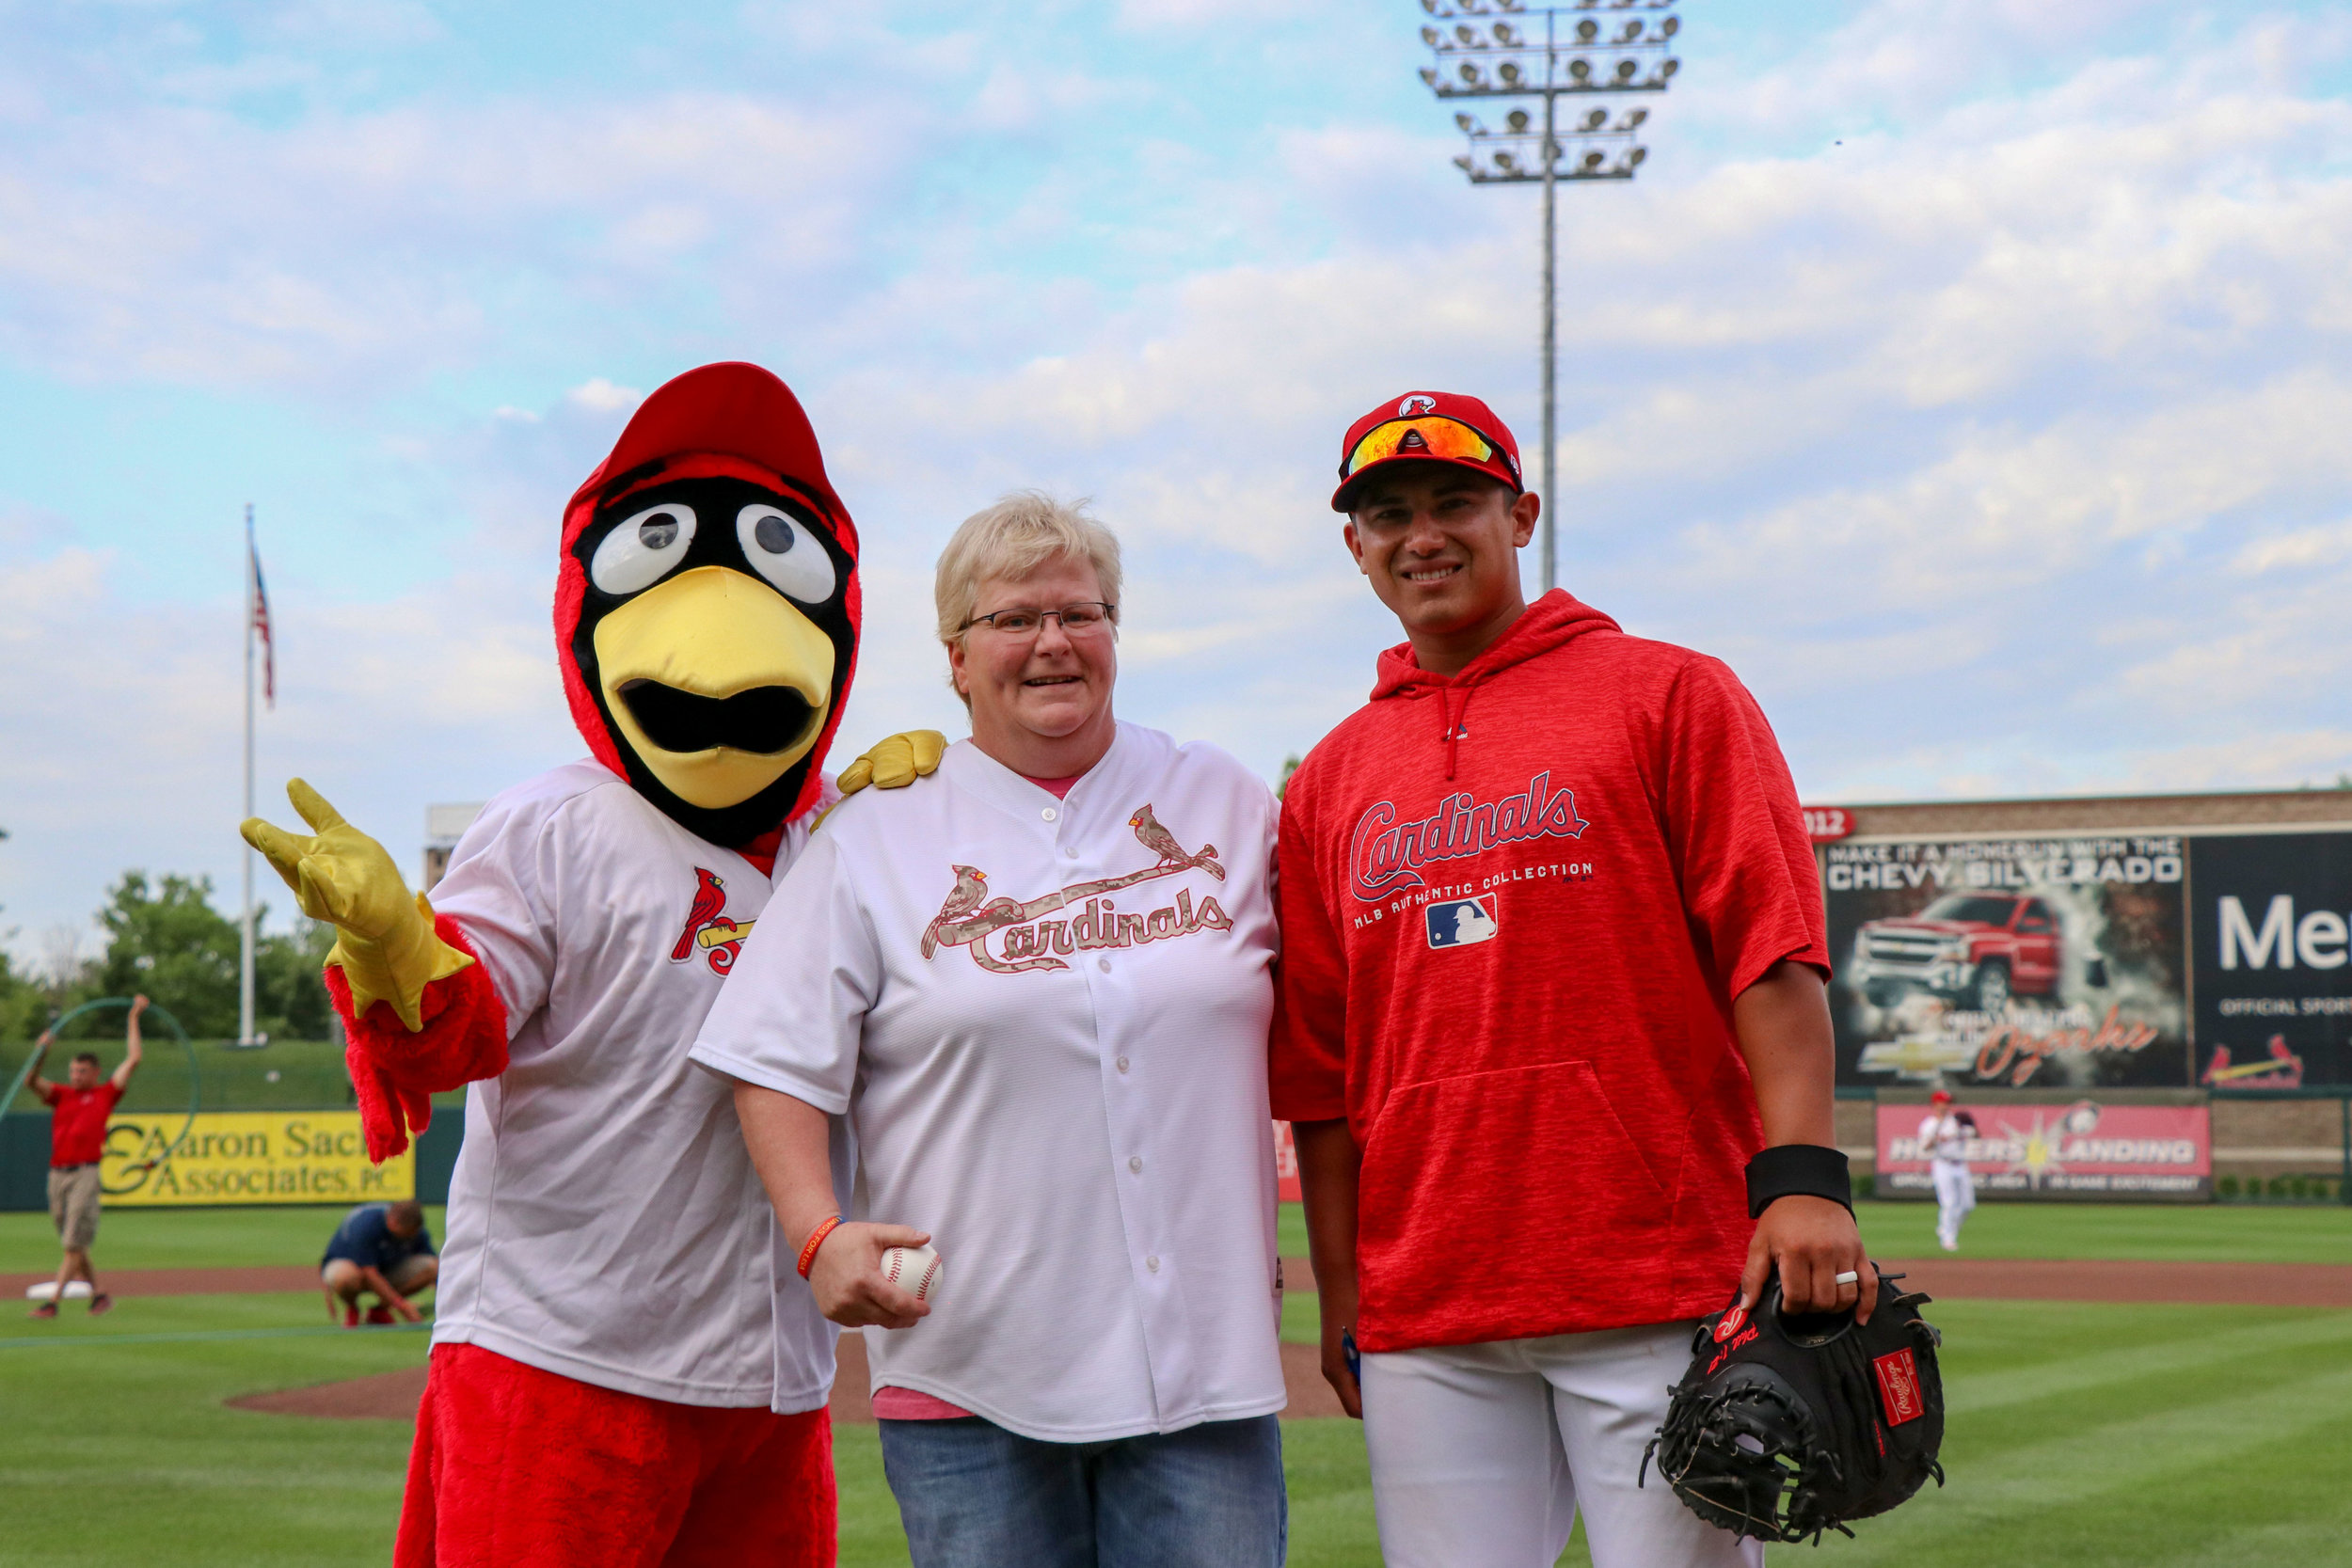 Tanya Stites, SRC Electrical, was selected to throw out the first pitch for her outstanding efforts and performance in the implementation of SRC Electrical's new ERP software system.